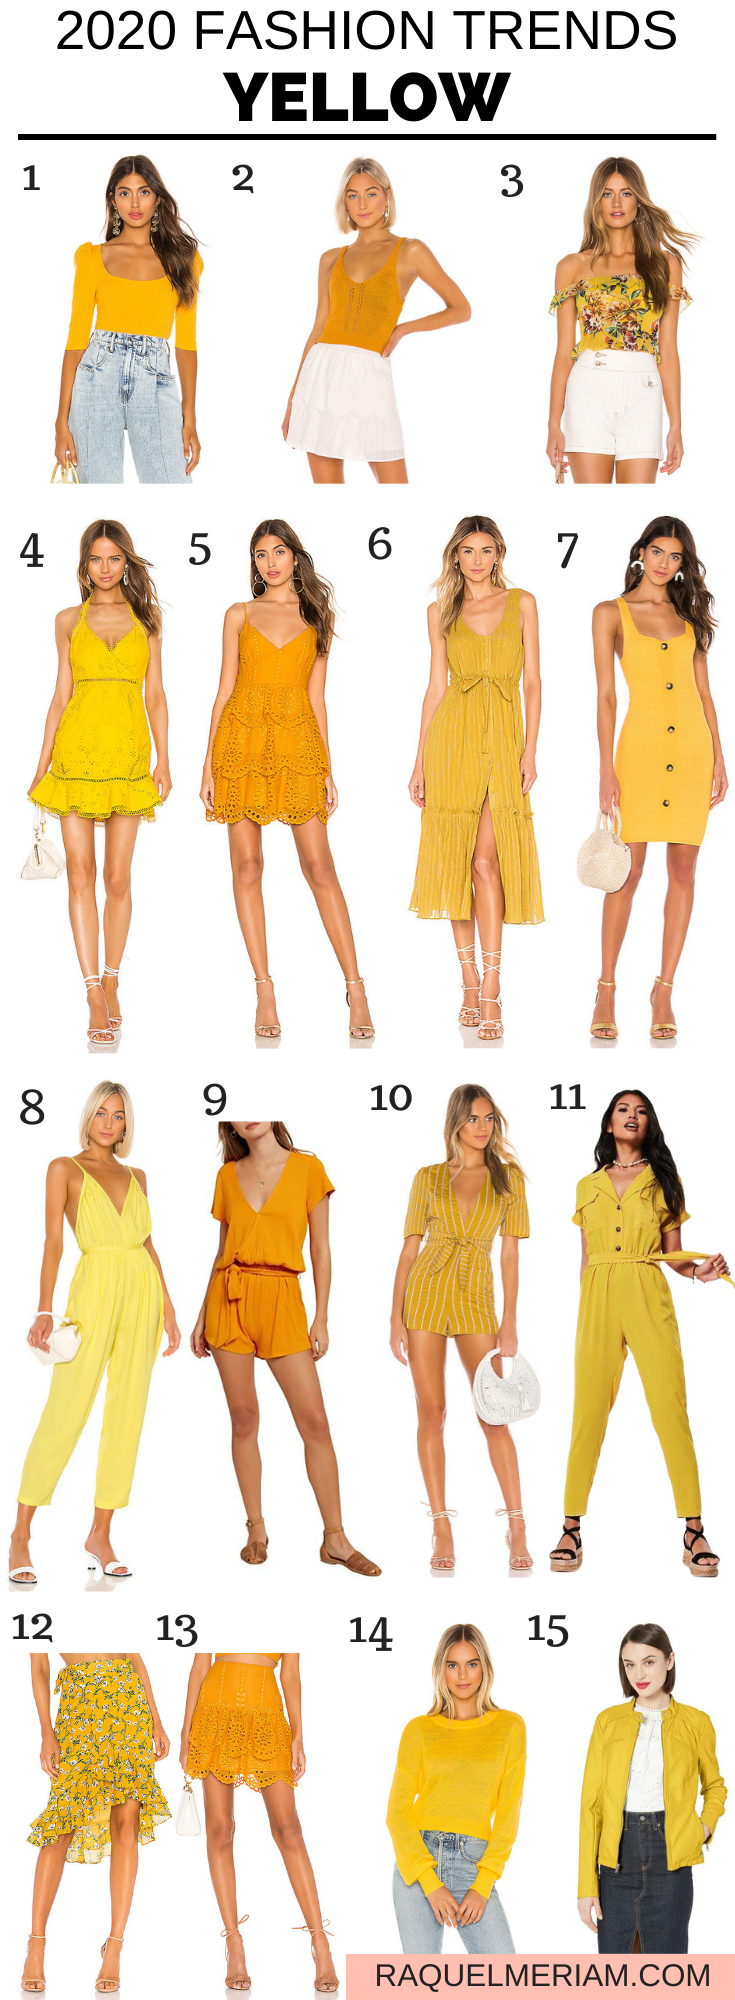 2020 Fashion Trends - Yellow